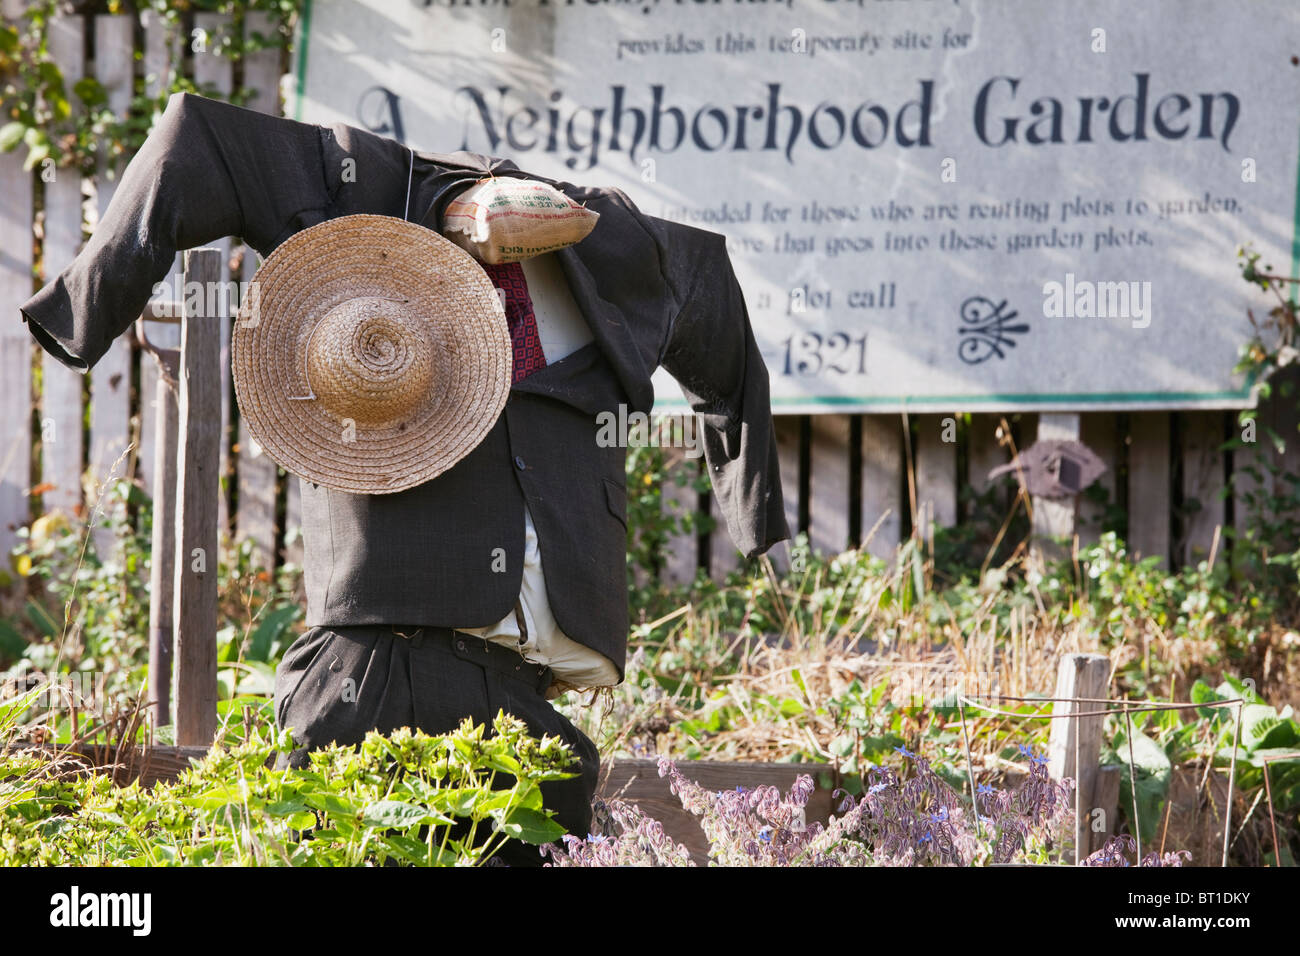 Scarecrow dressed in suit, white shirt and tie at community garden in Arcata, California, USA. - Stock Image